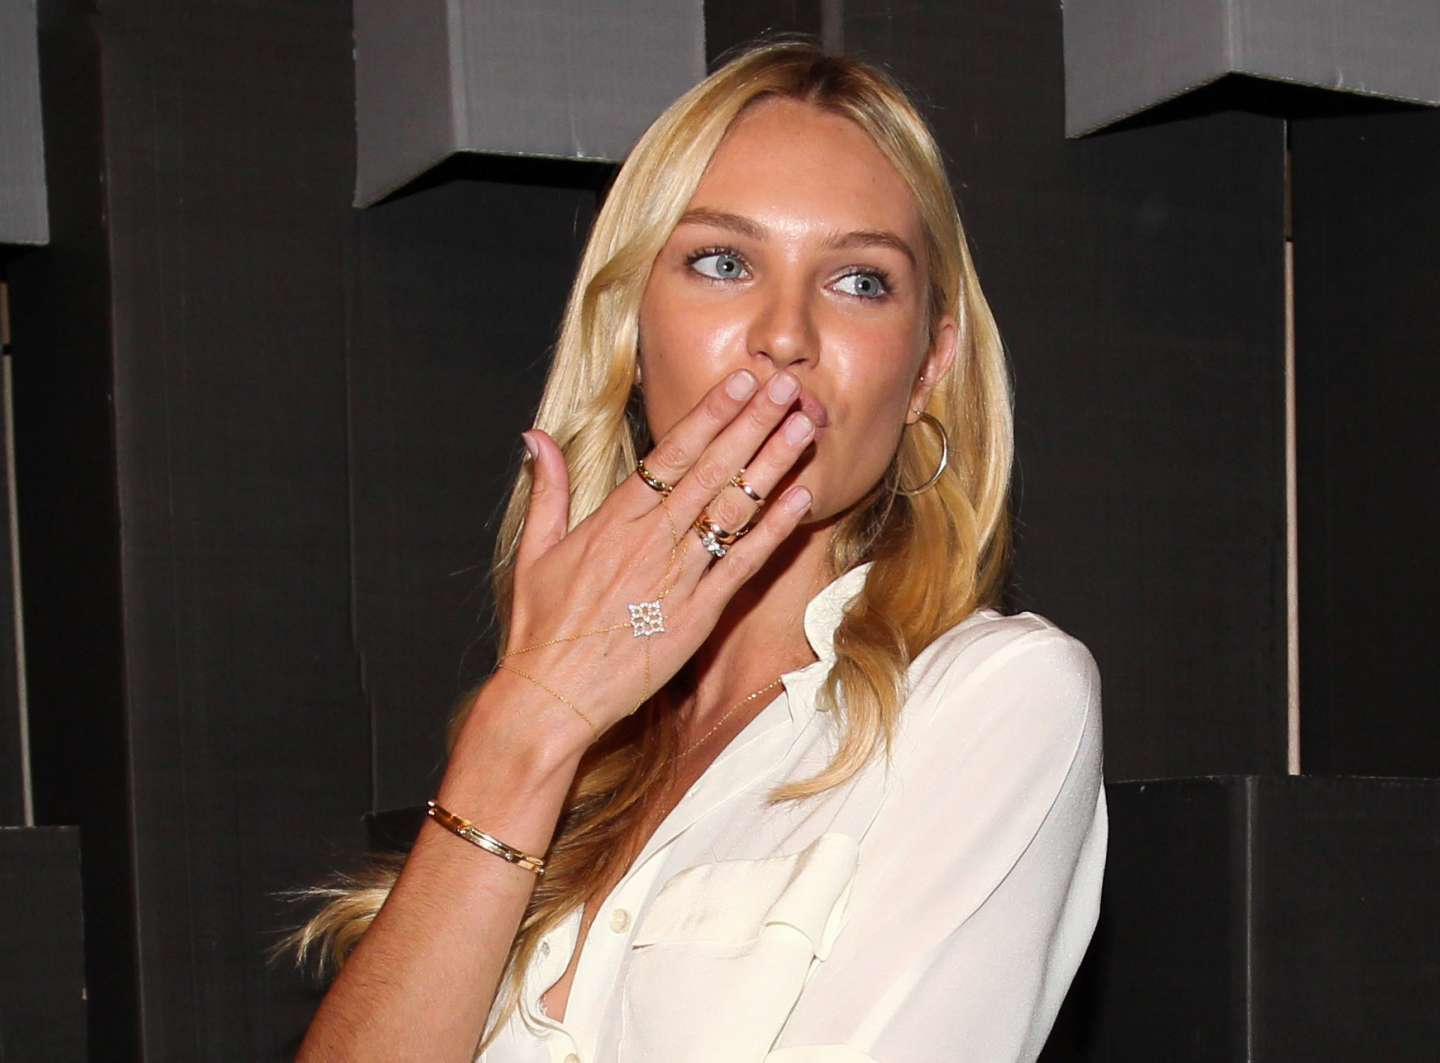 Il knuckle ring di Candice Swanepoel